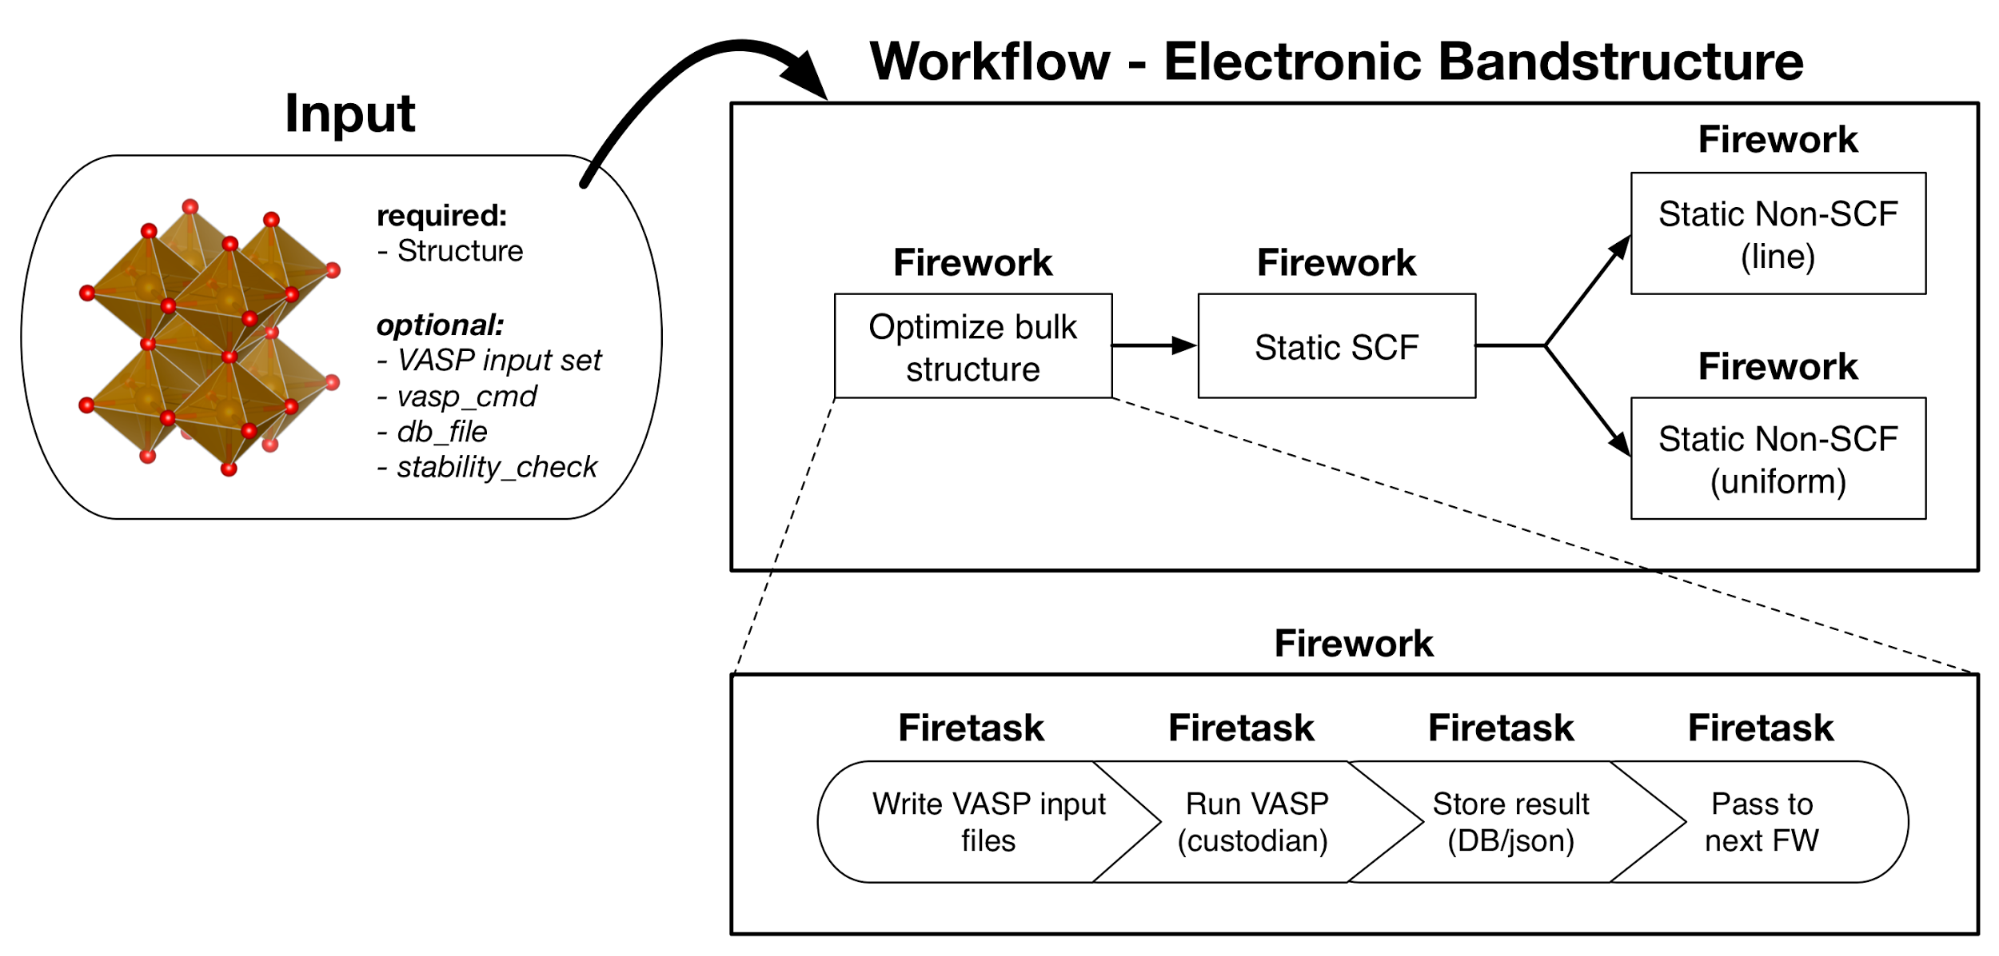 Band structure workflow